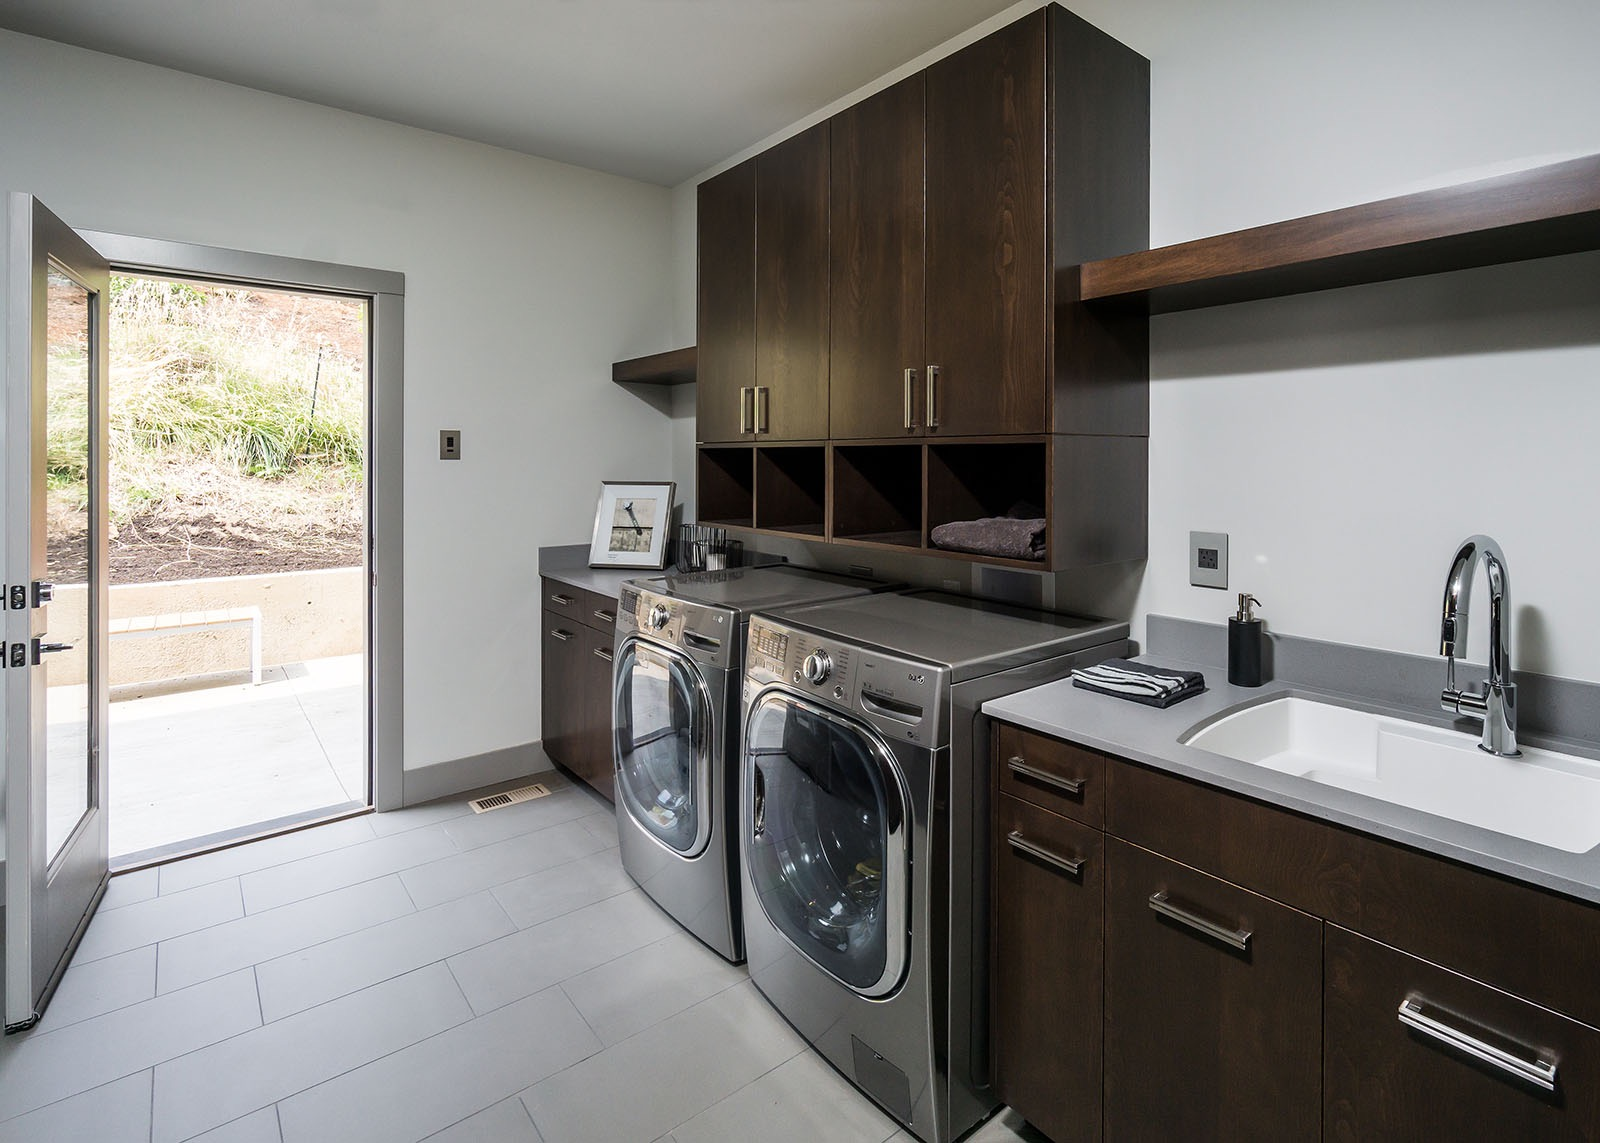 Stylish And Functional Design For Contemporary Laundry Room (Image 21 of 26)